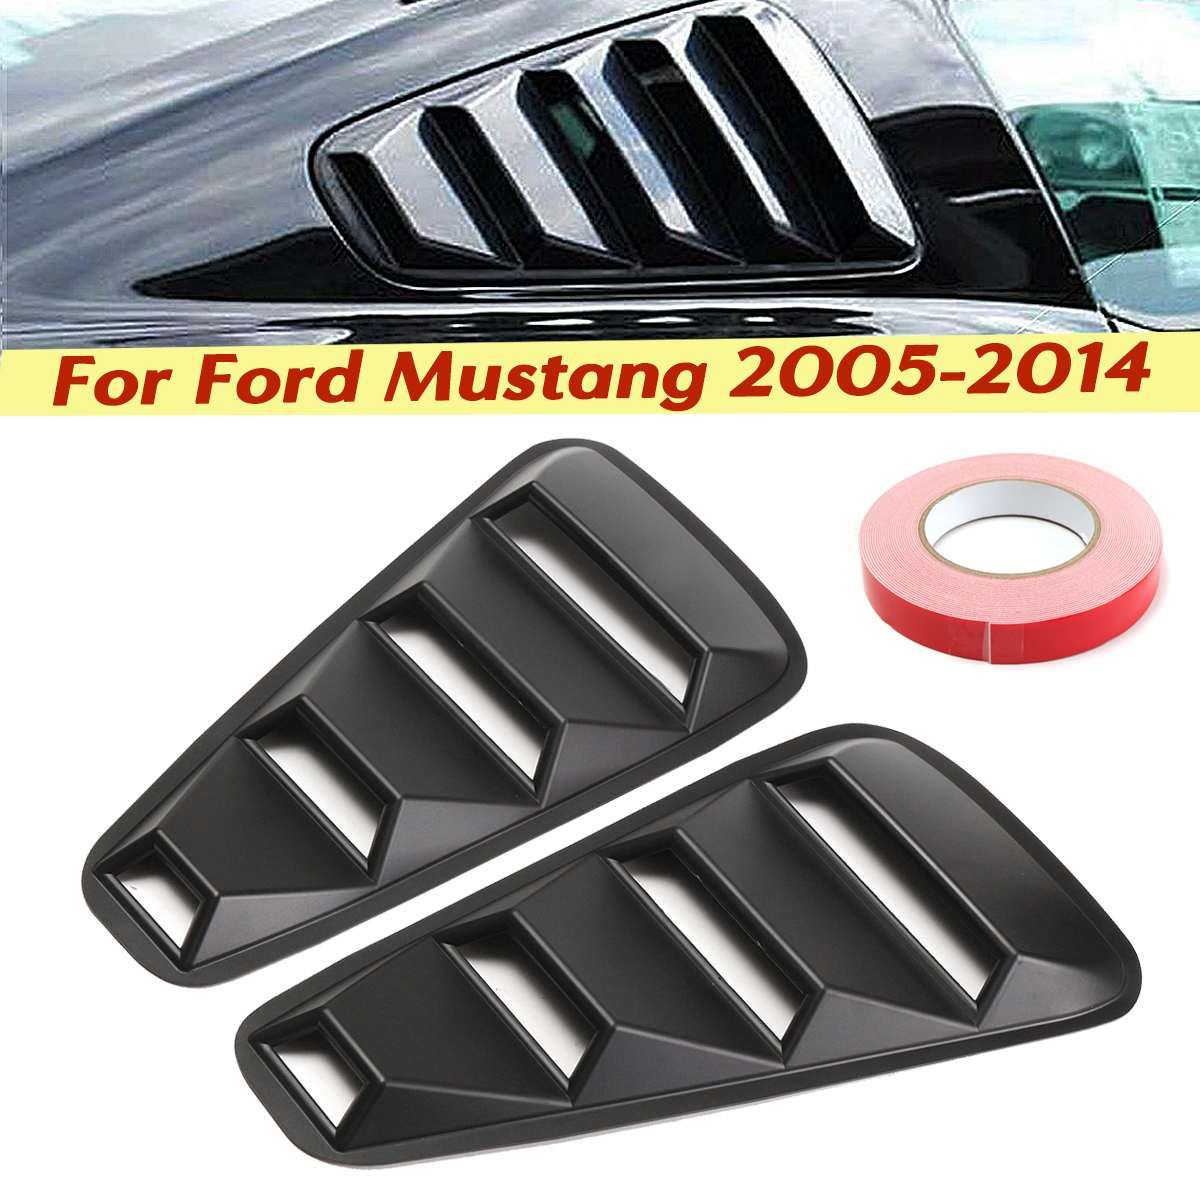 Window Louver For 2005-2014 Ford Mustang 1//4 Quarter ABS SideScoop Cover Vent-##